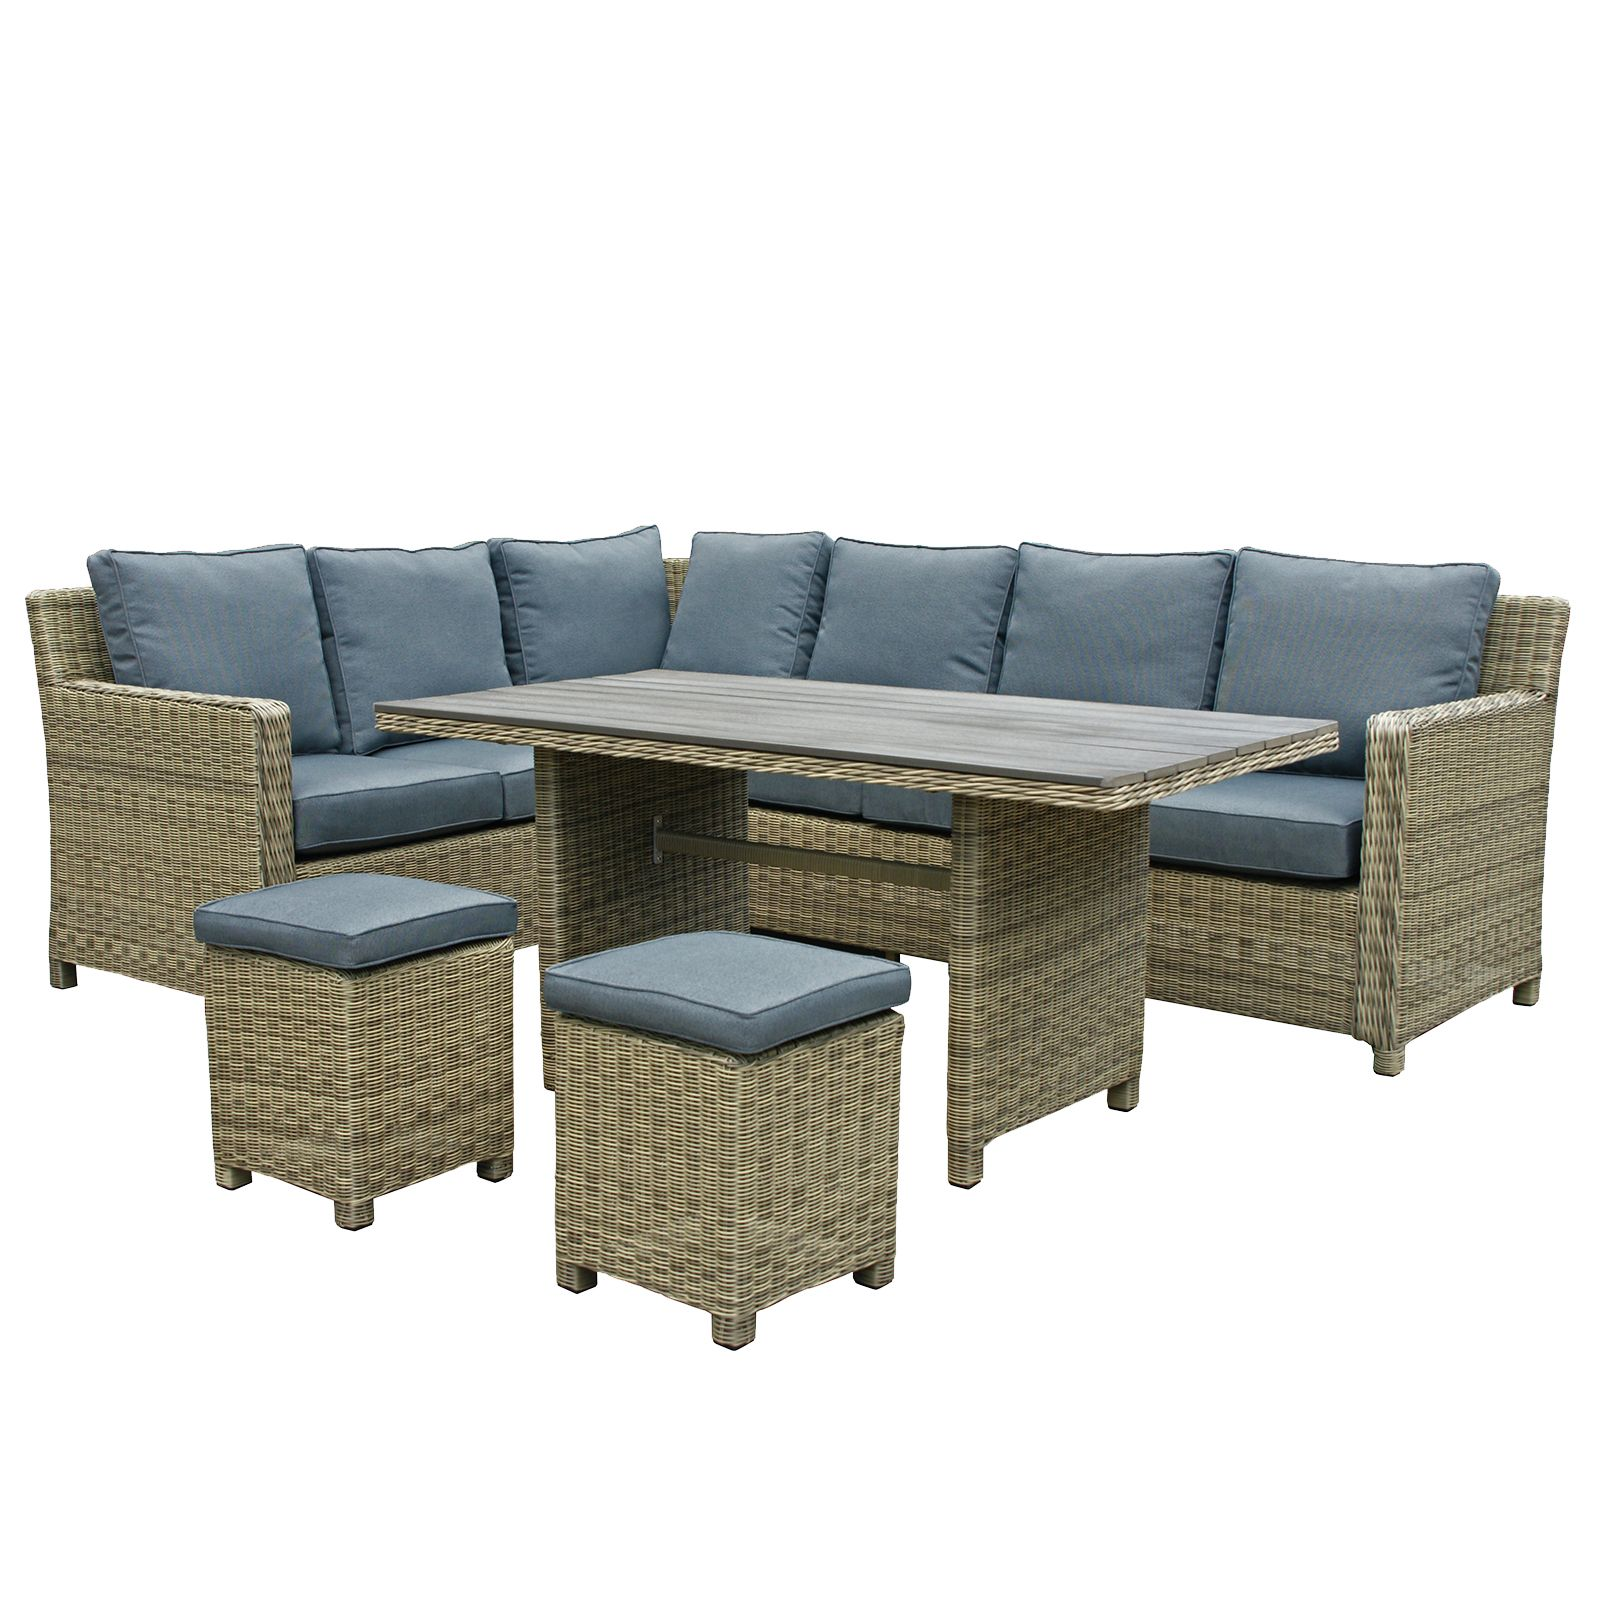 Oseasons Hampton Rattan 8 Seater Sofa Dining Corner Set In   House Of Fraser Part 49